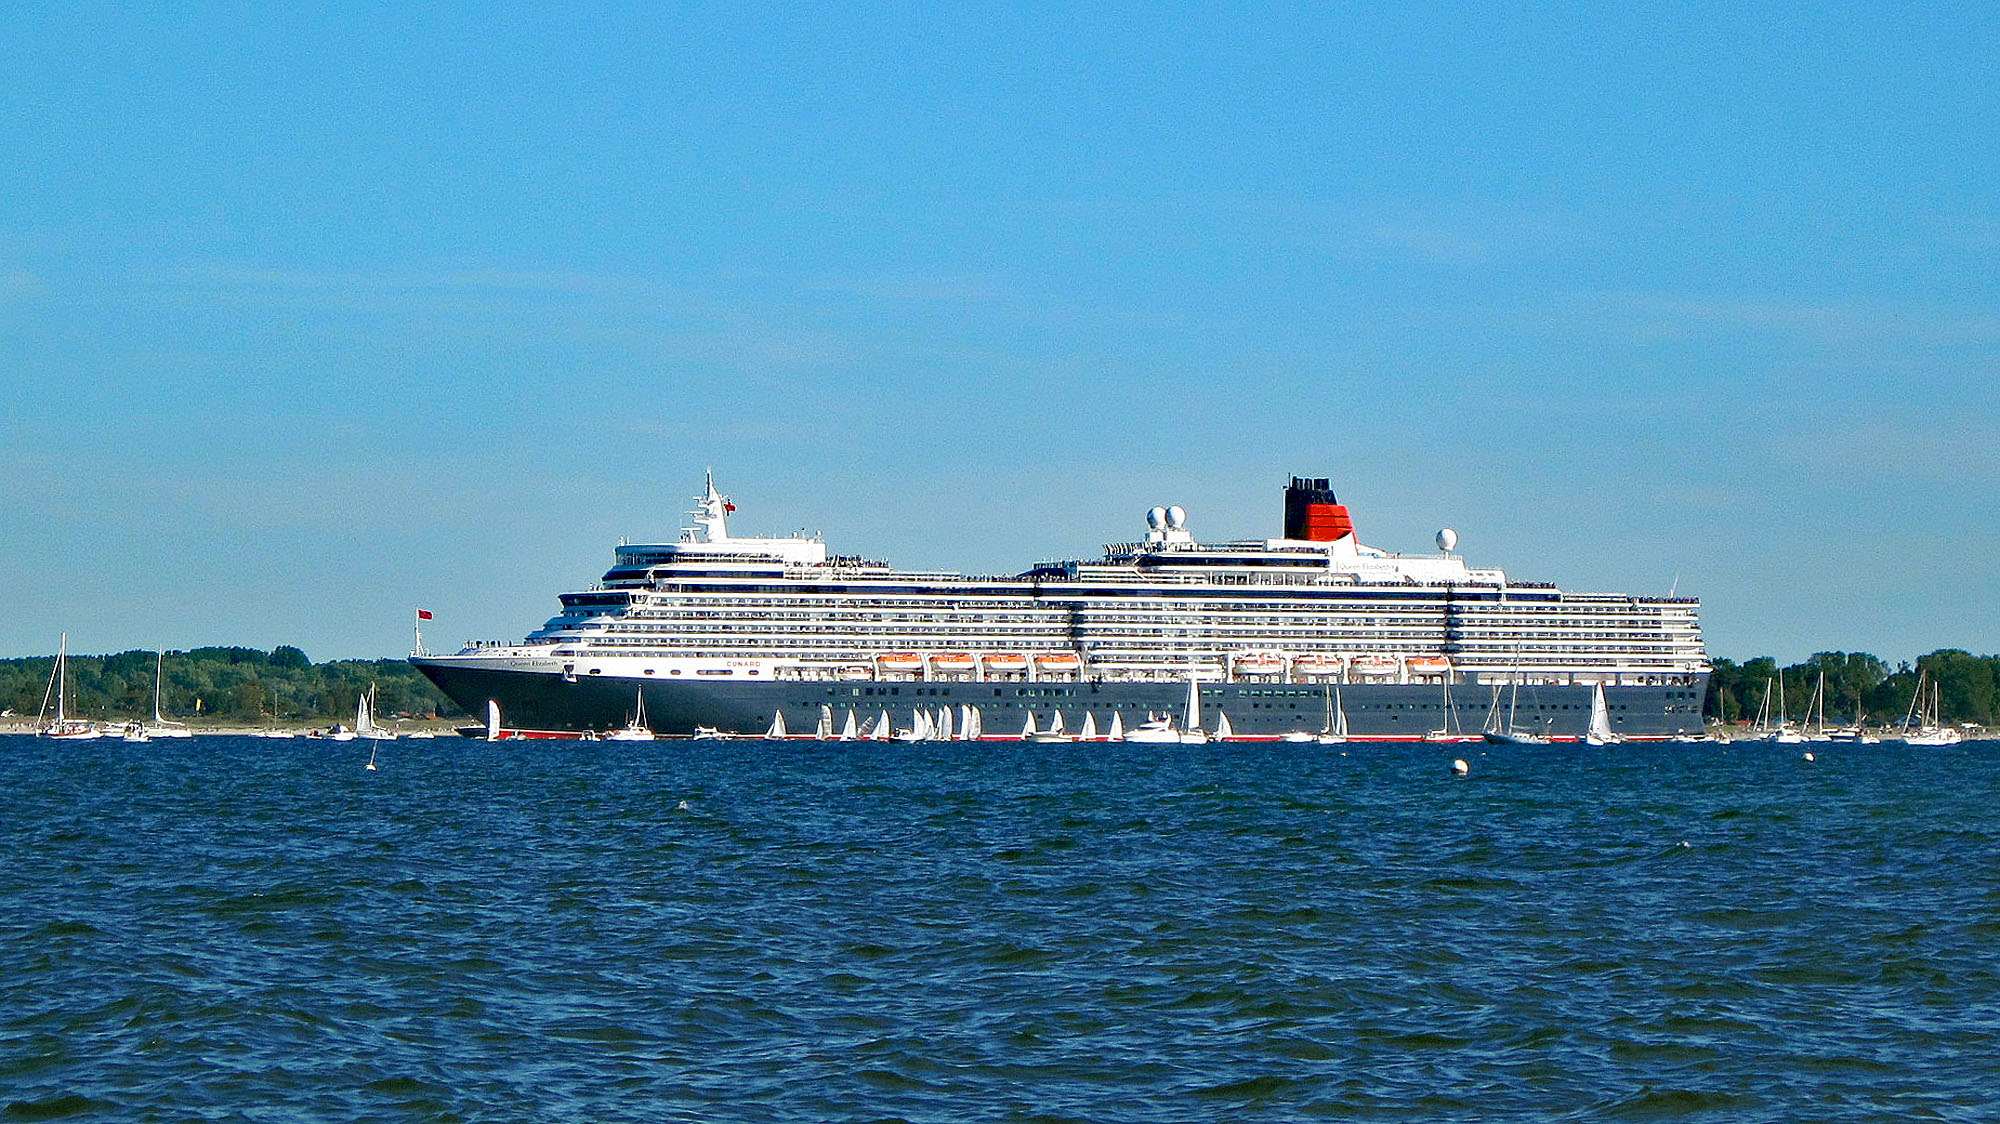 Die Queen Elizabeth am 04.069.2010 in Travemünde © TraveMedia